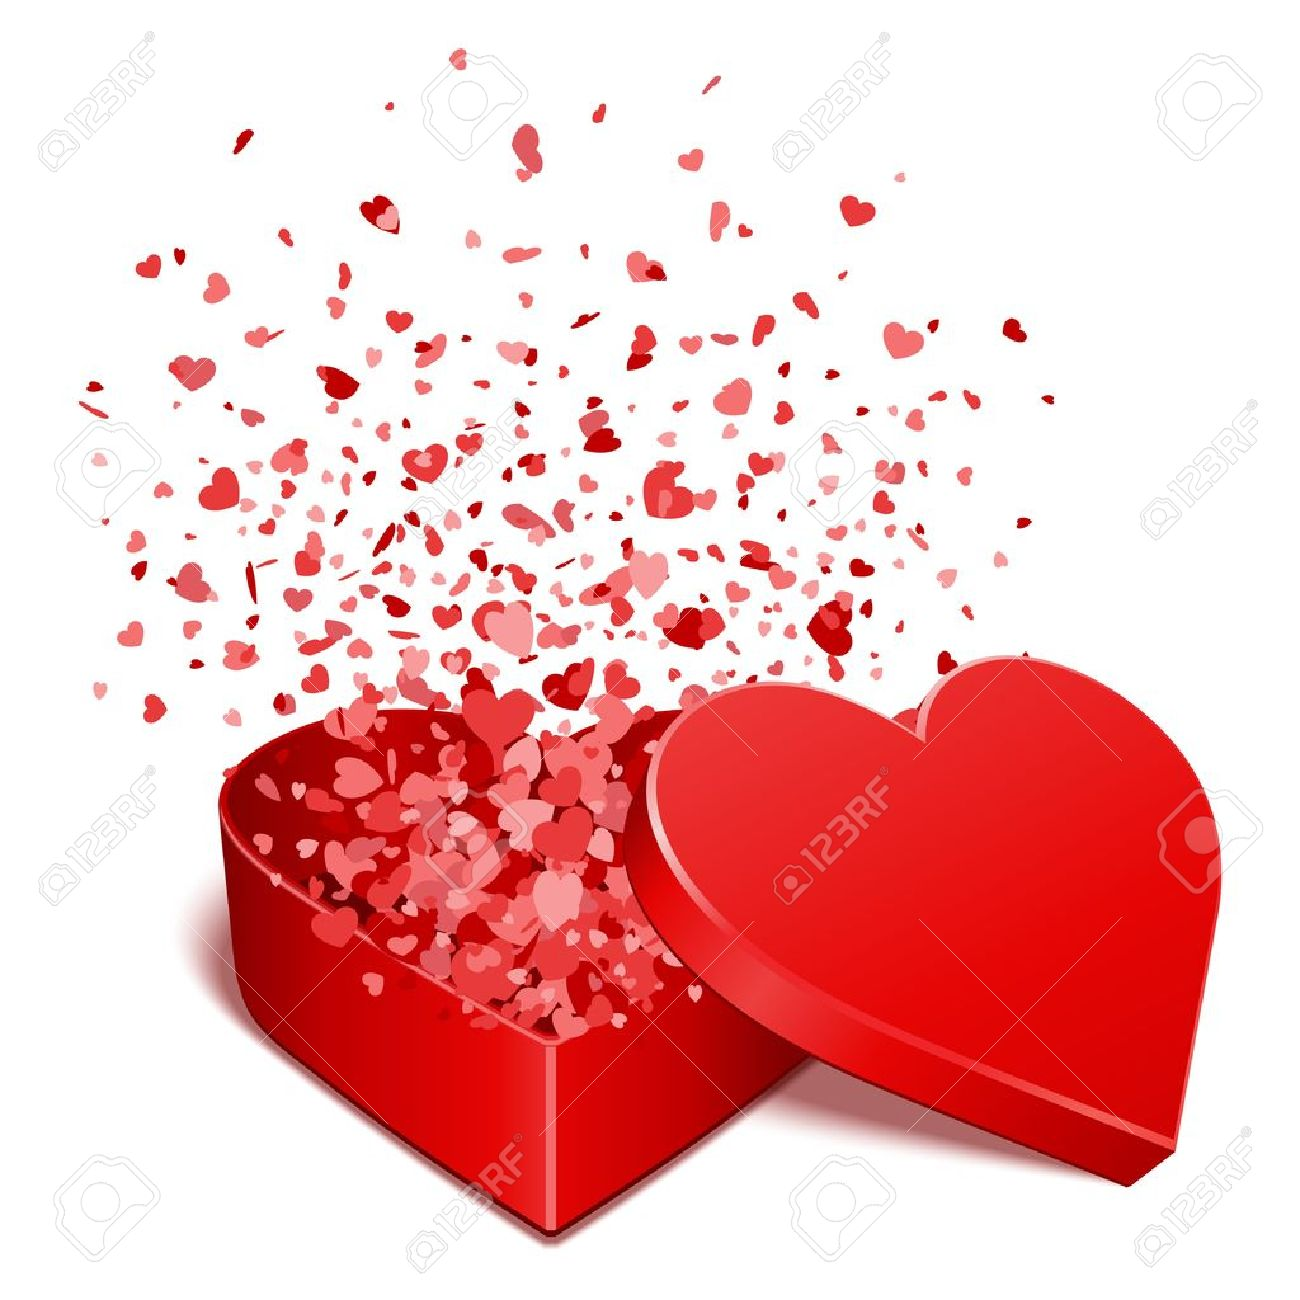 heart gift present with fly hearts valentine day vector